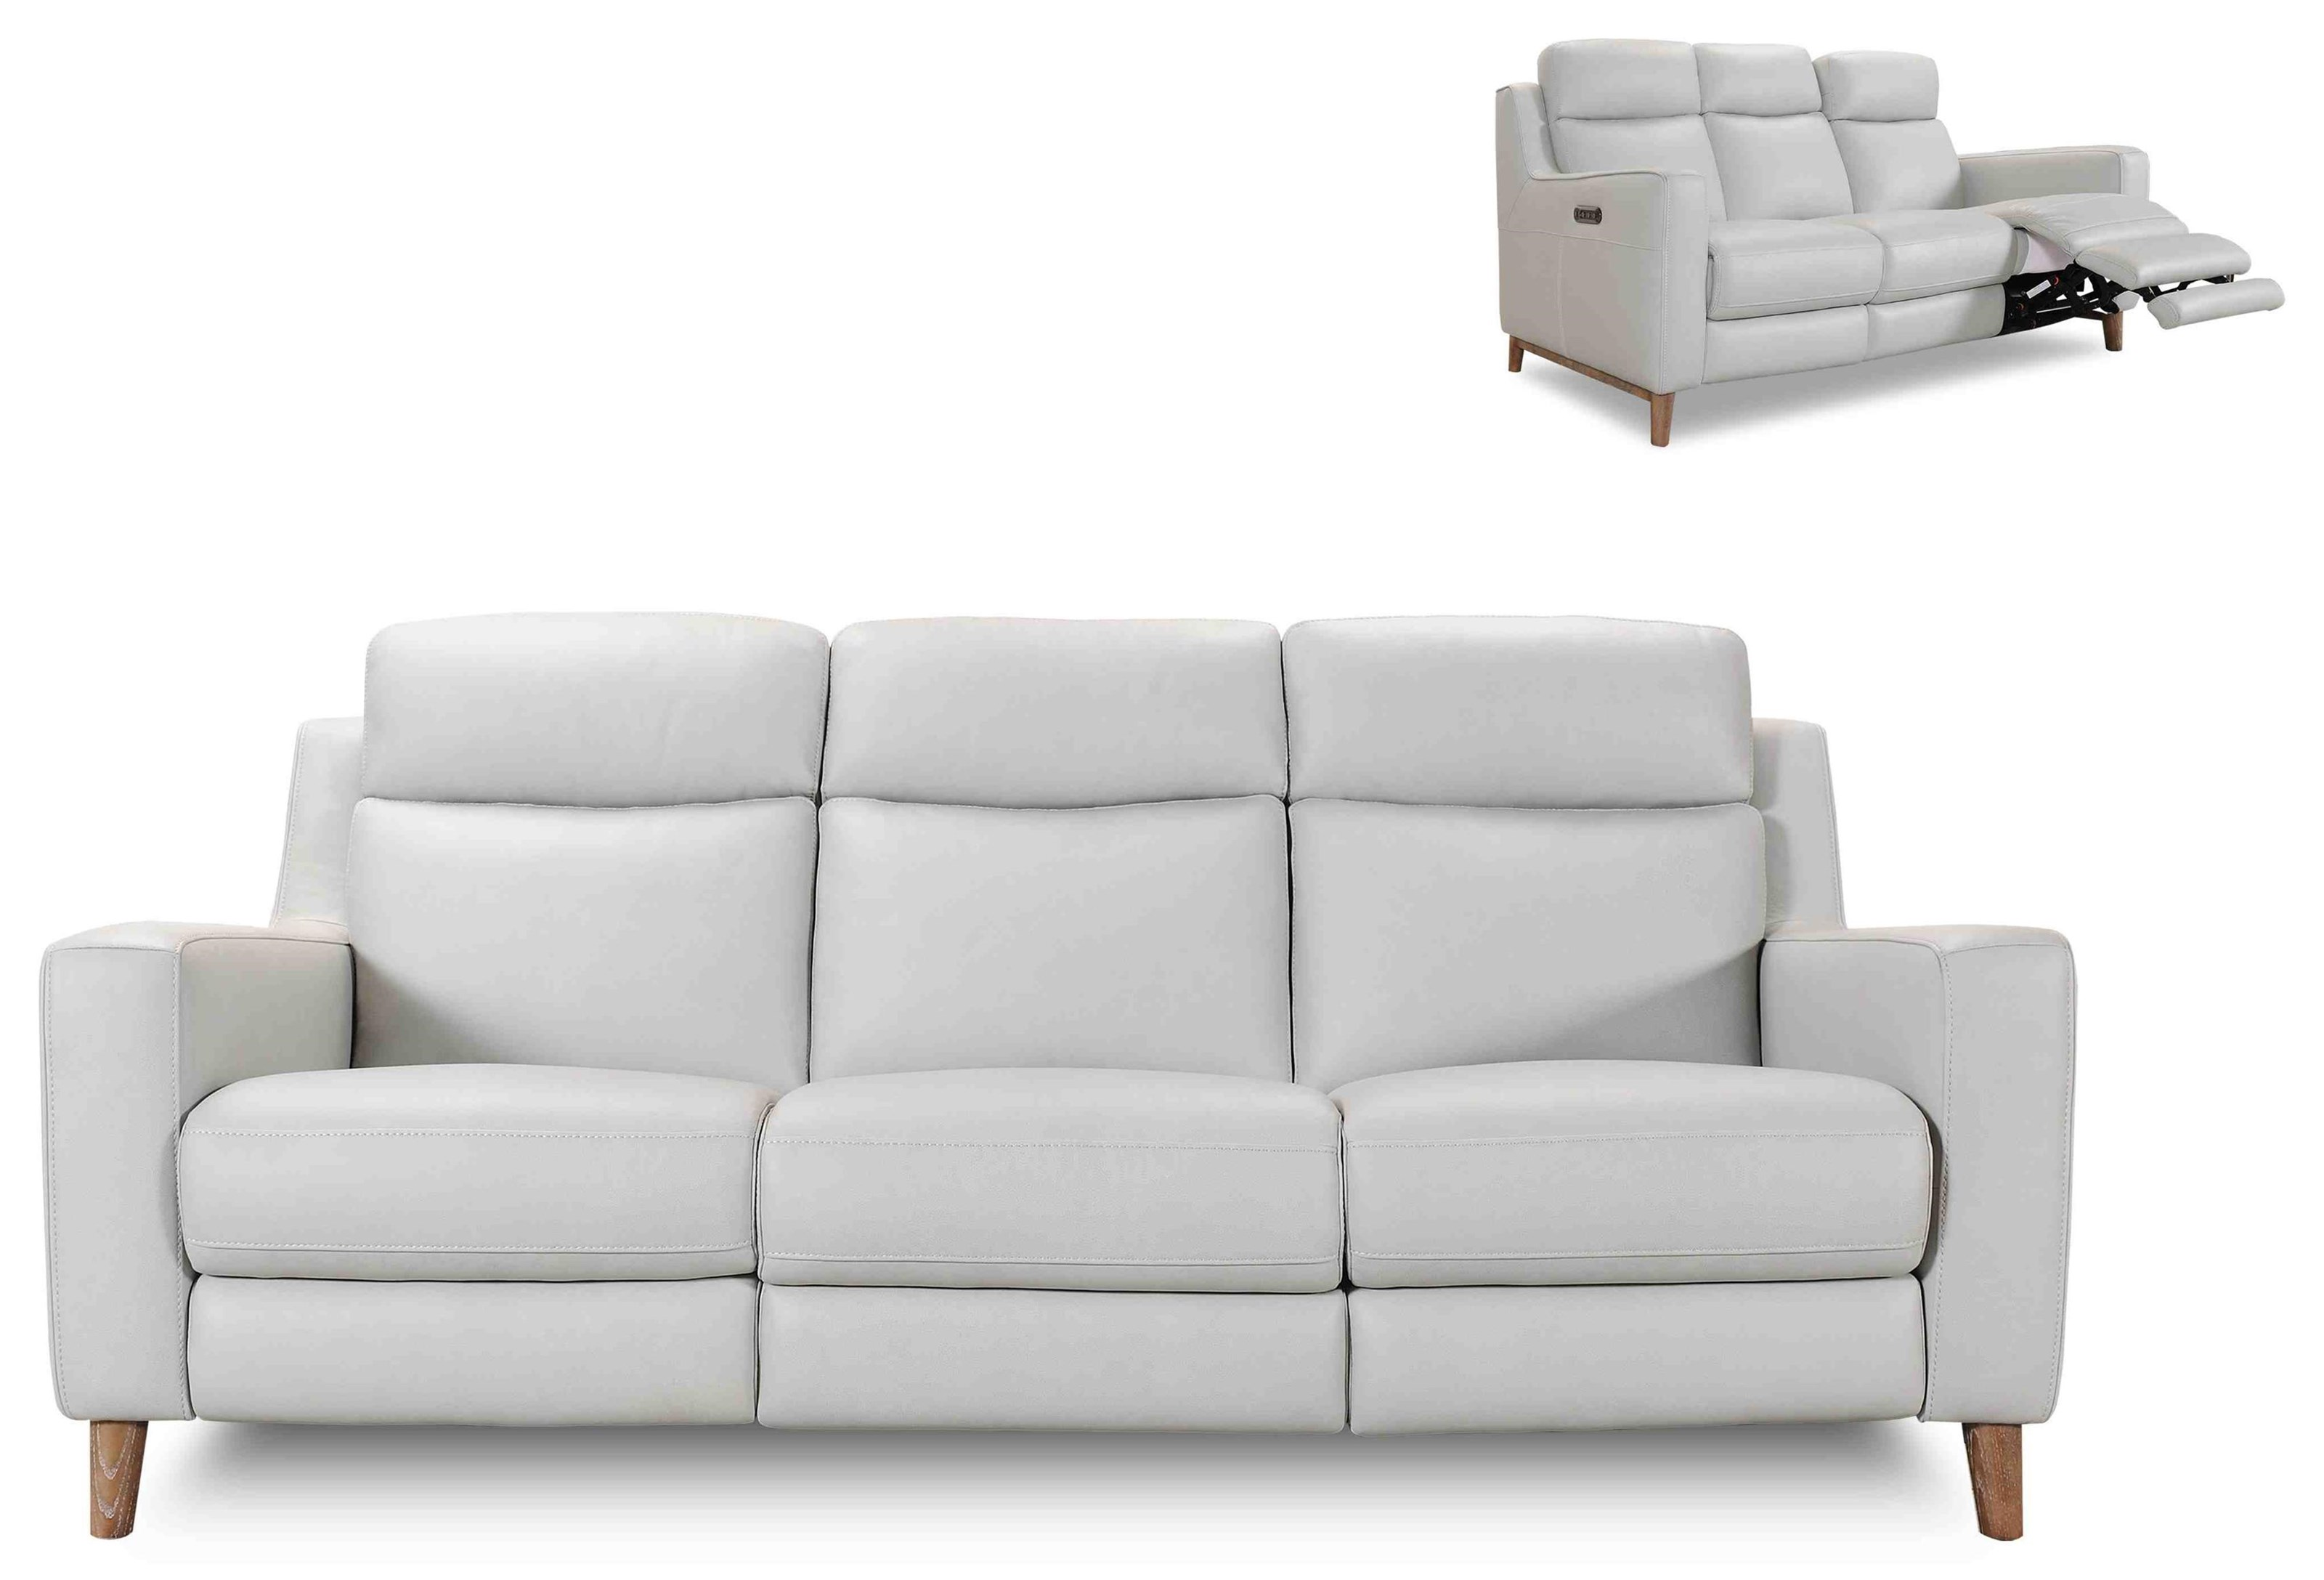 32097 Power Motion Sofa 32097 Power Motion Sofa at Bennett's Furniture and Mattresses